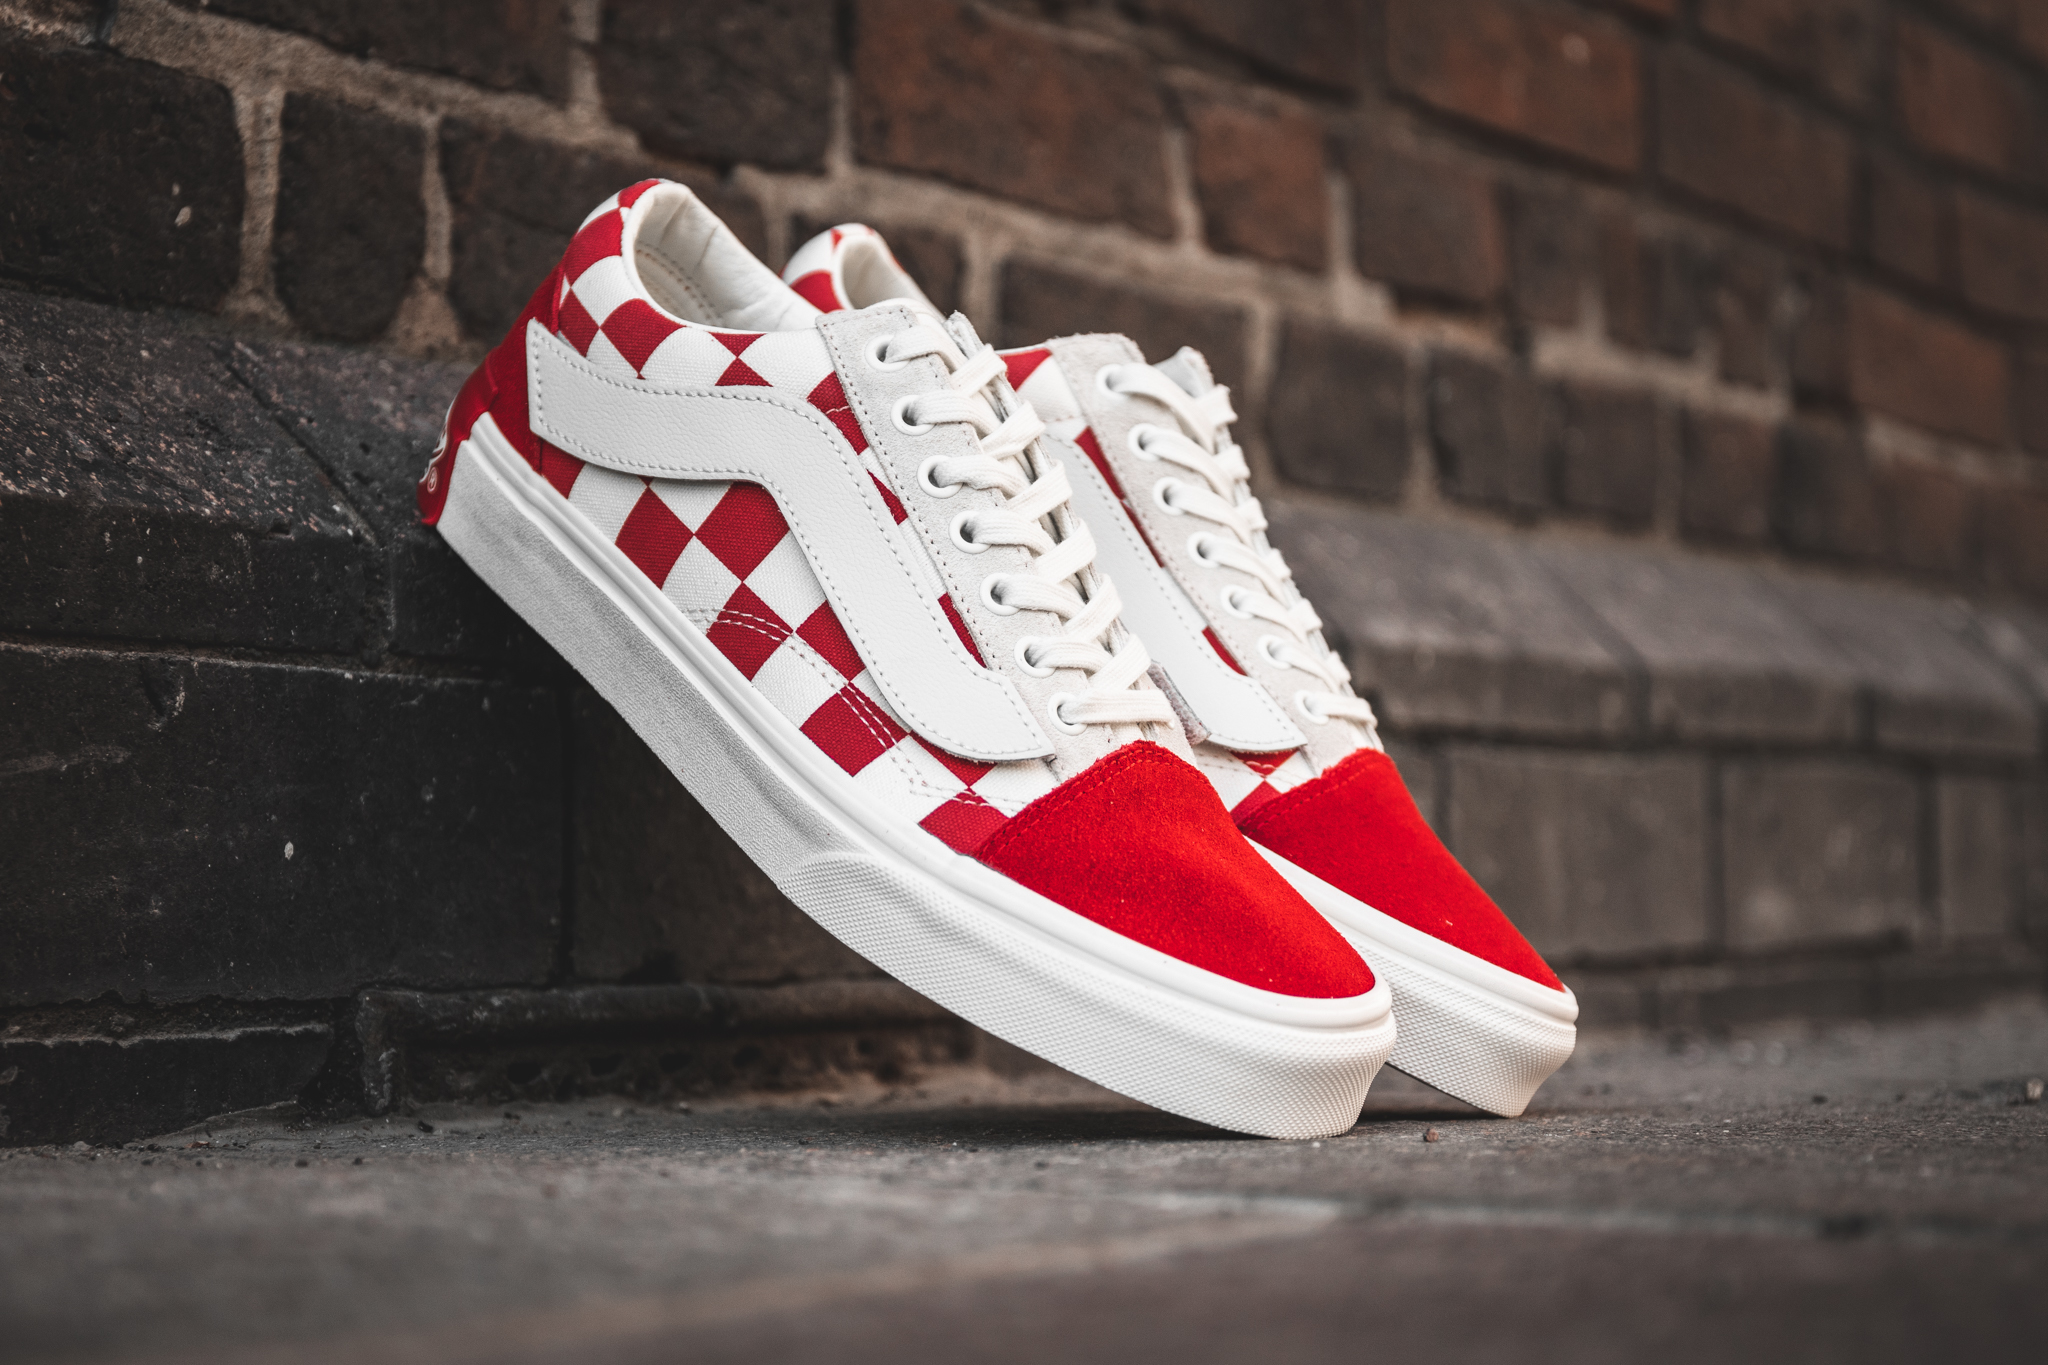 VANS X PURLICUE MARSHMALLOW/RACING RED